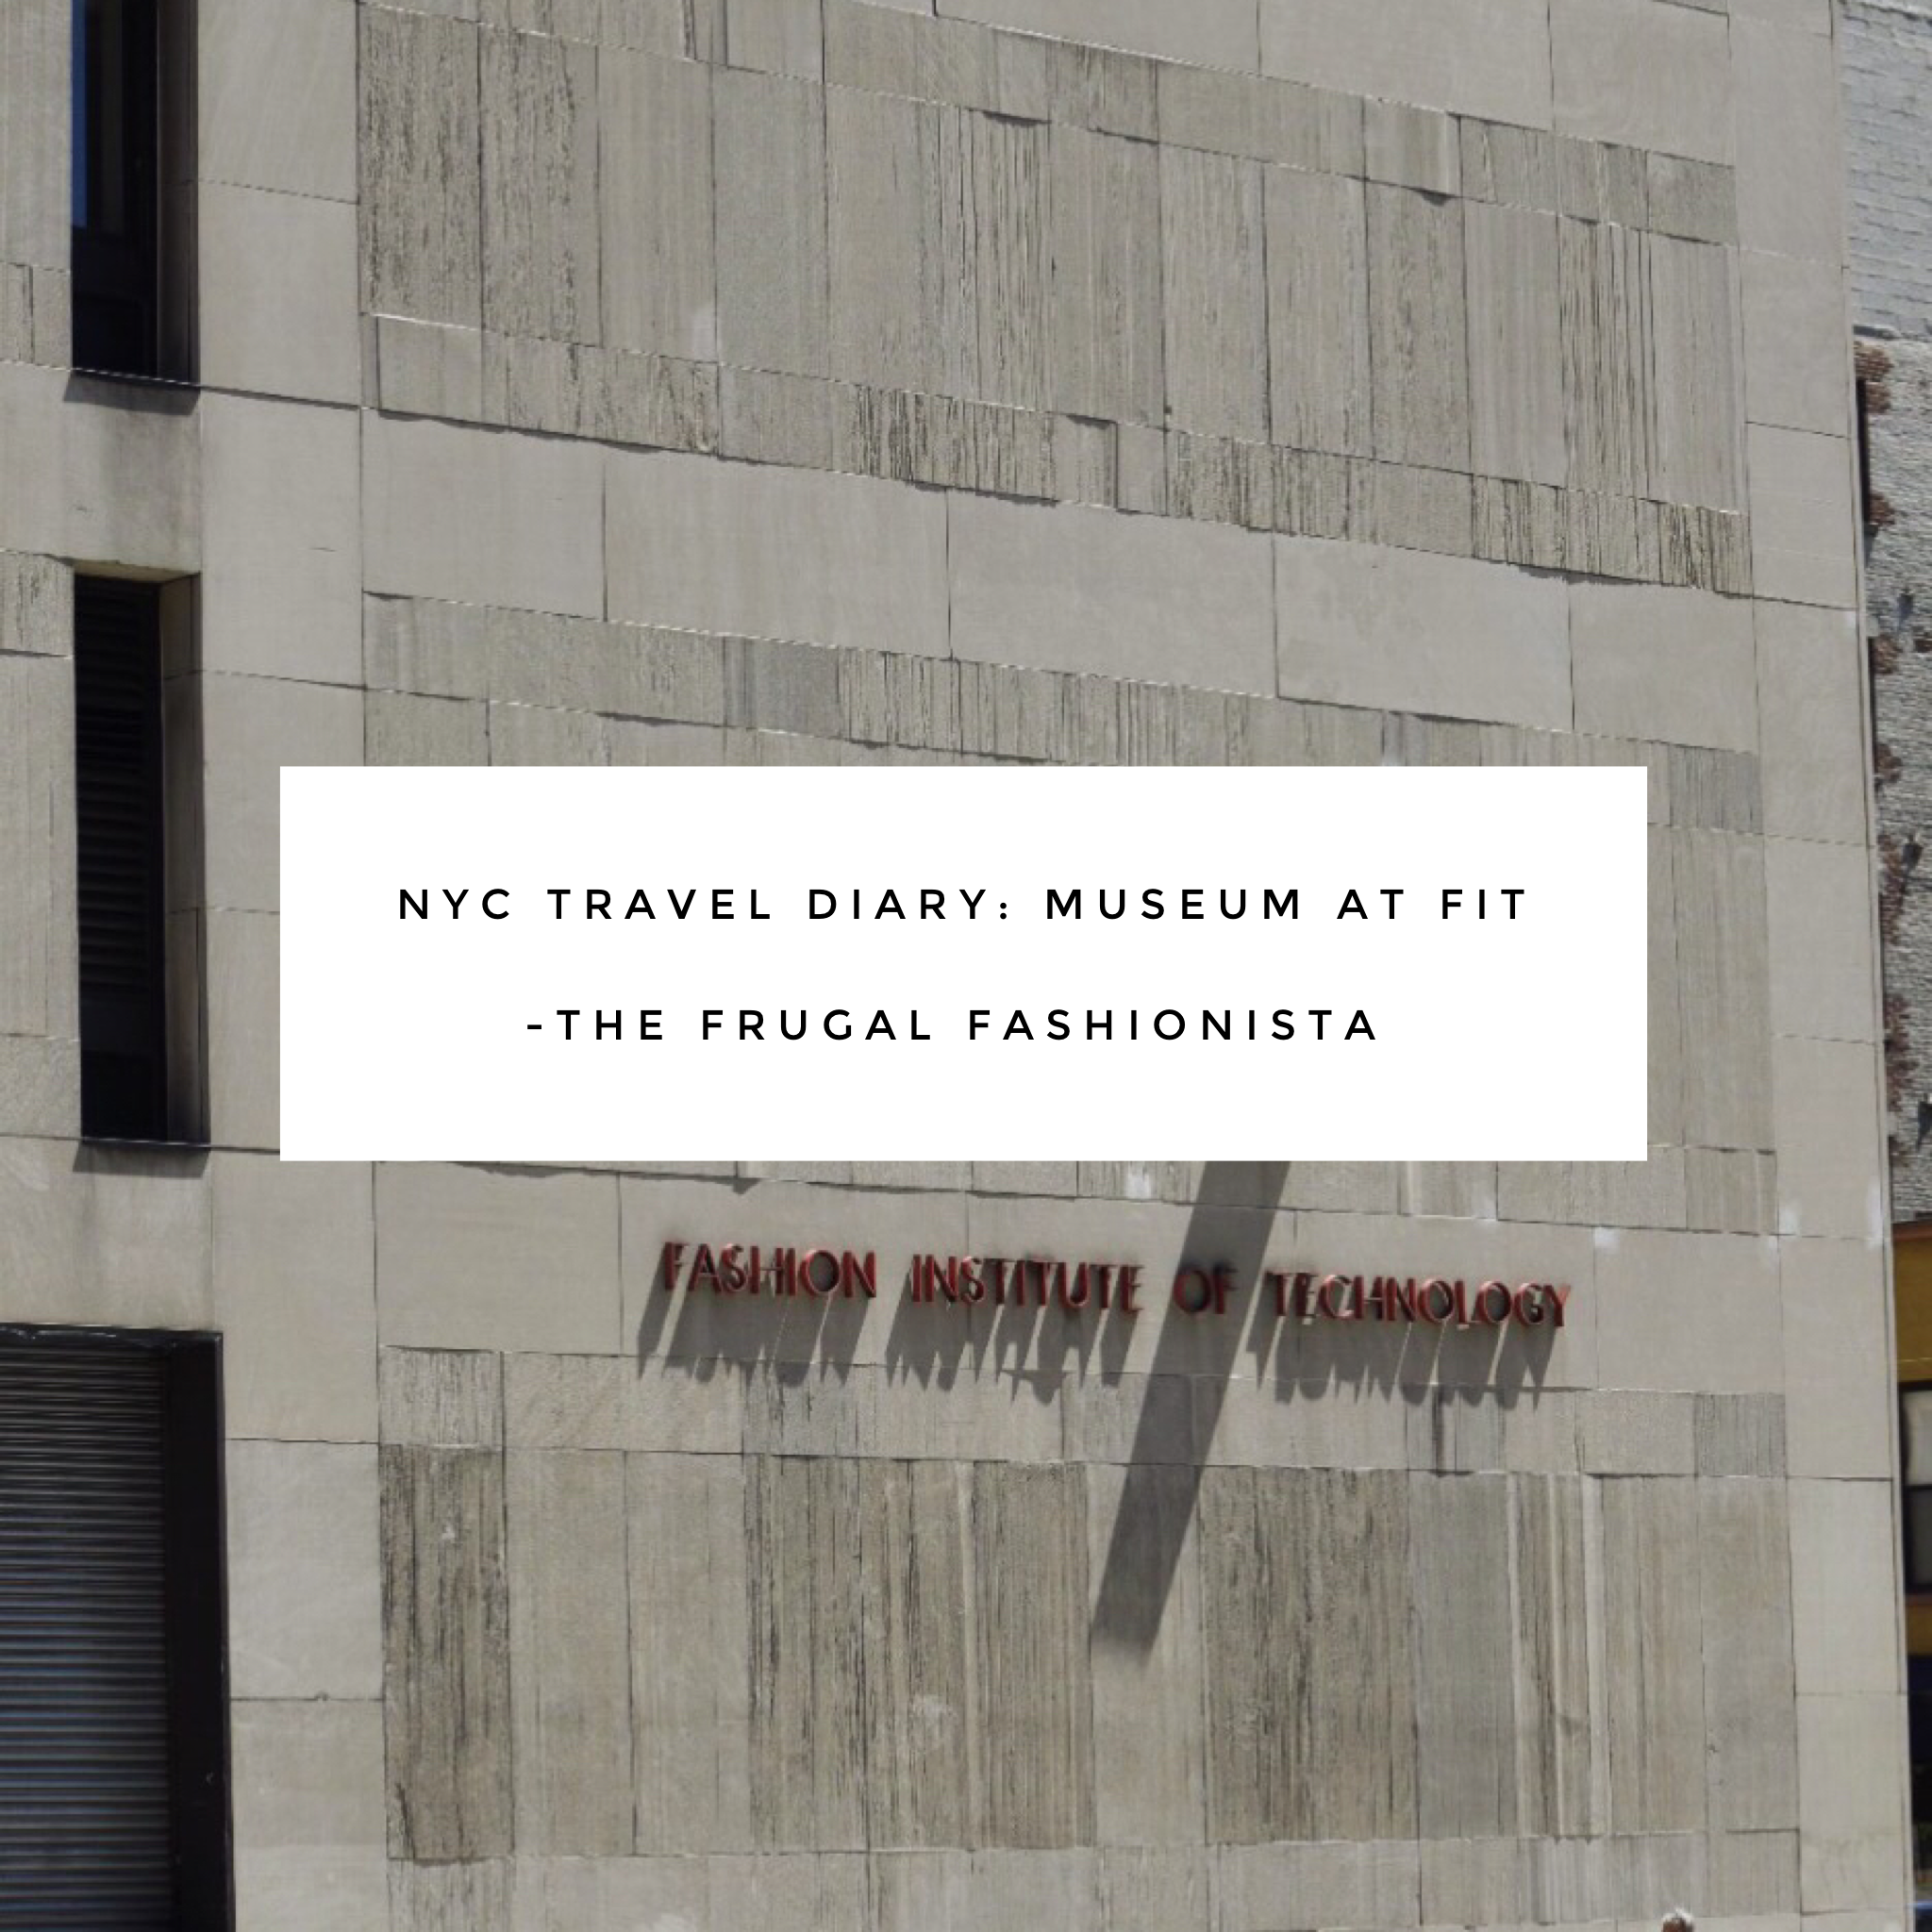 The Frugal Fashionista: NYC Travel Diary - Museum at FIT